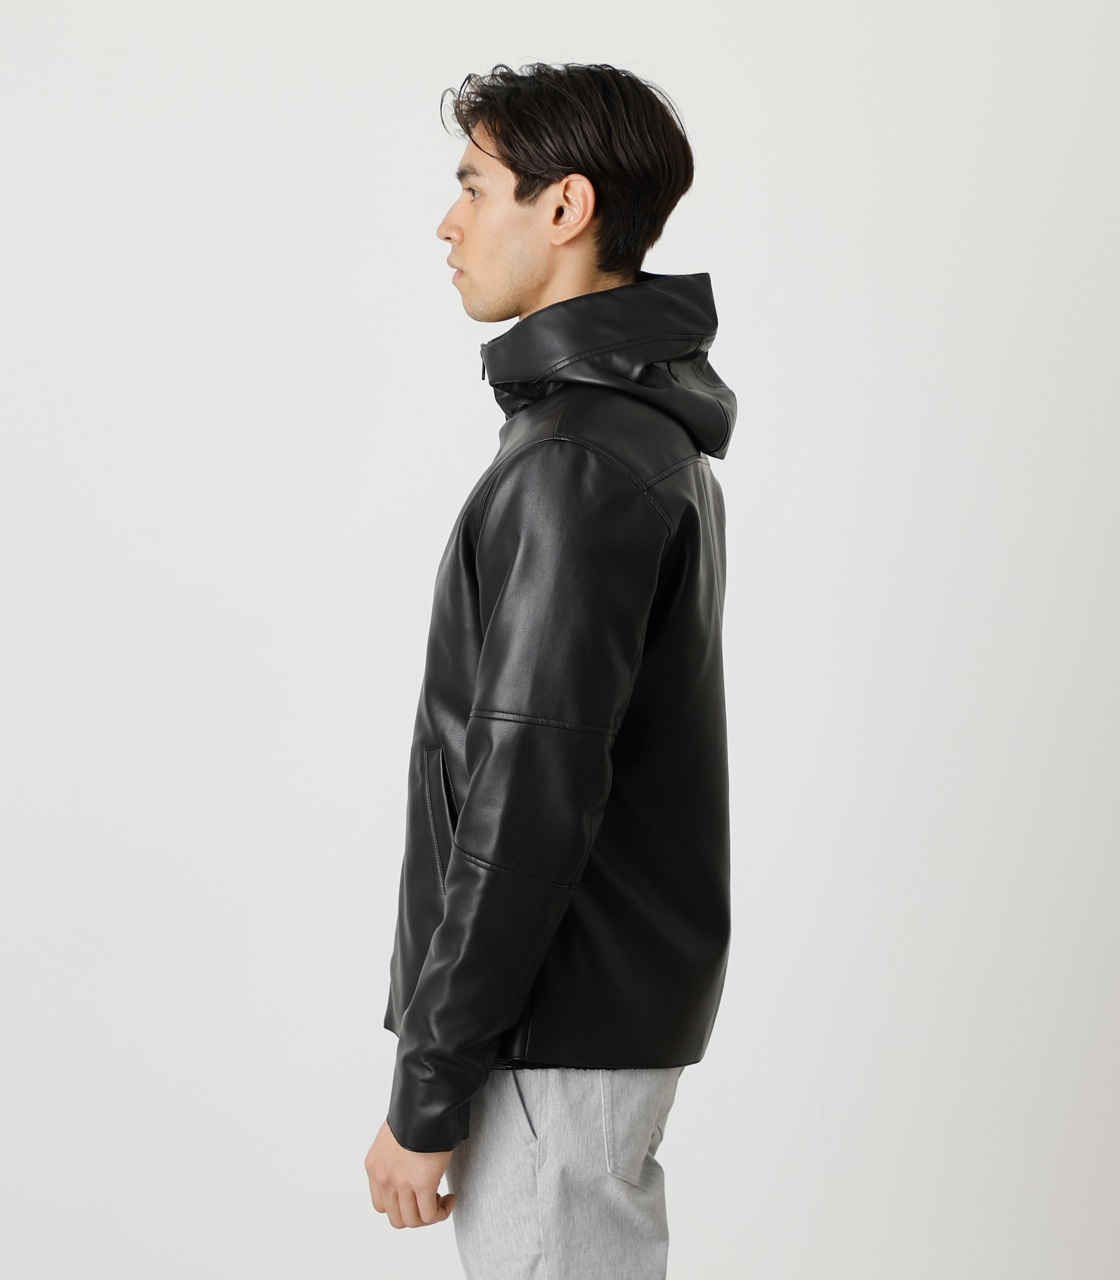 ECO LEATHER HOODED/エコレザーフーデッド 詳細画像 BLK 6